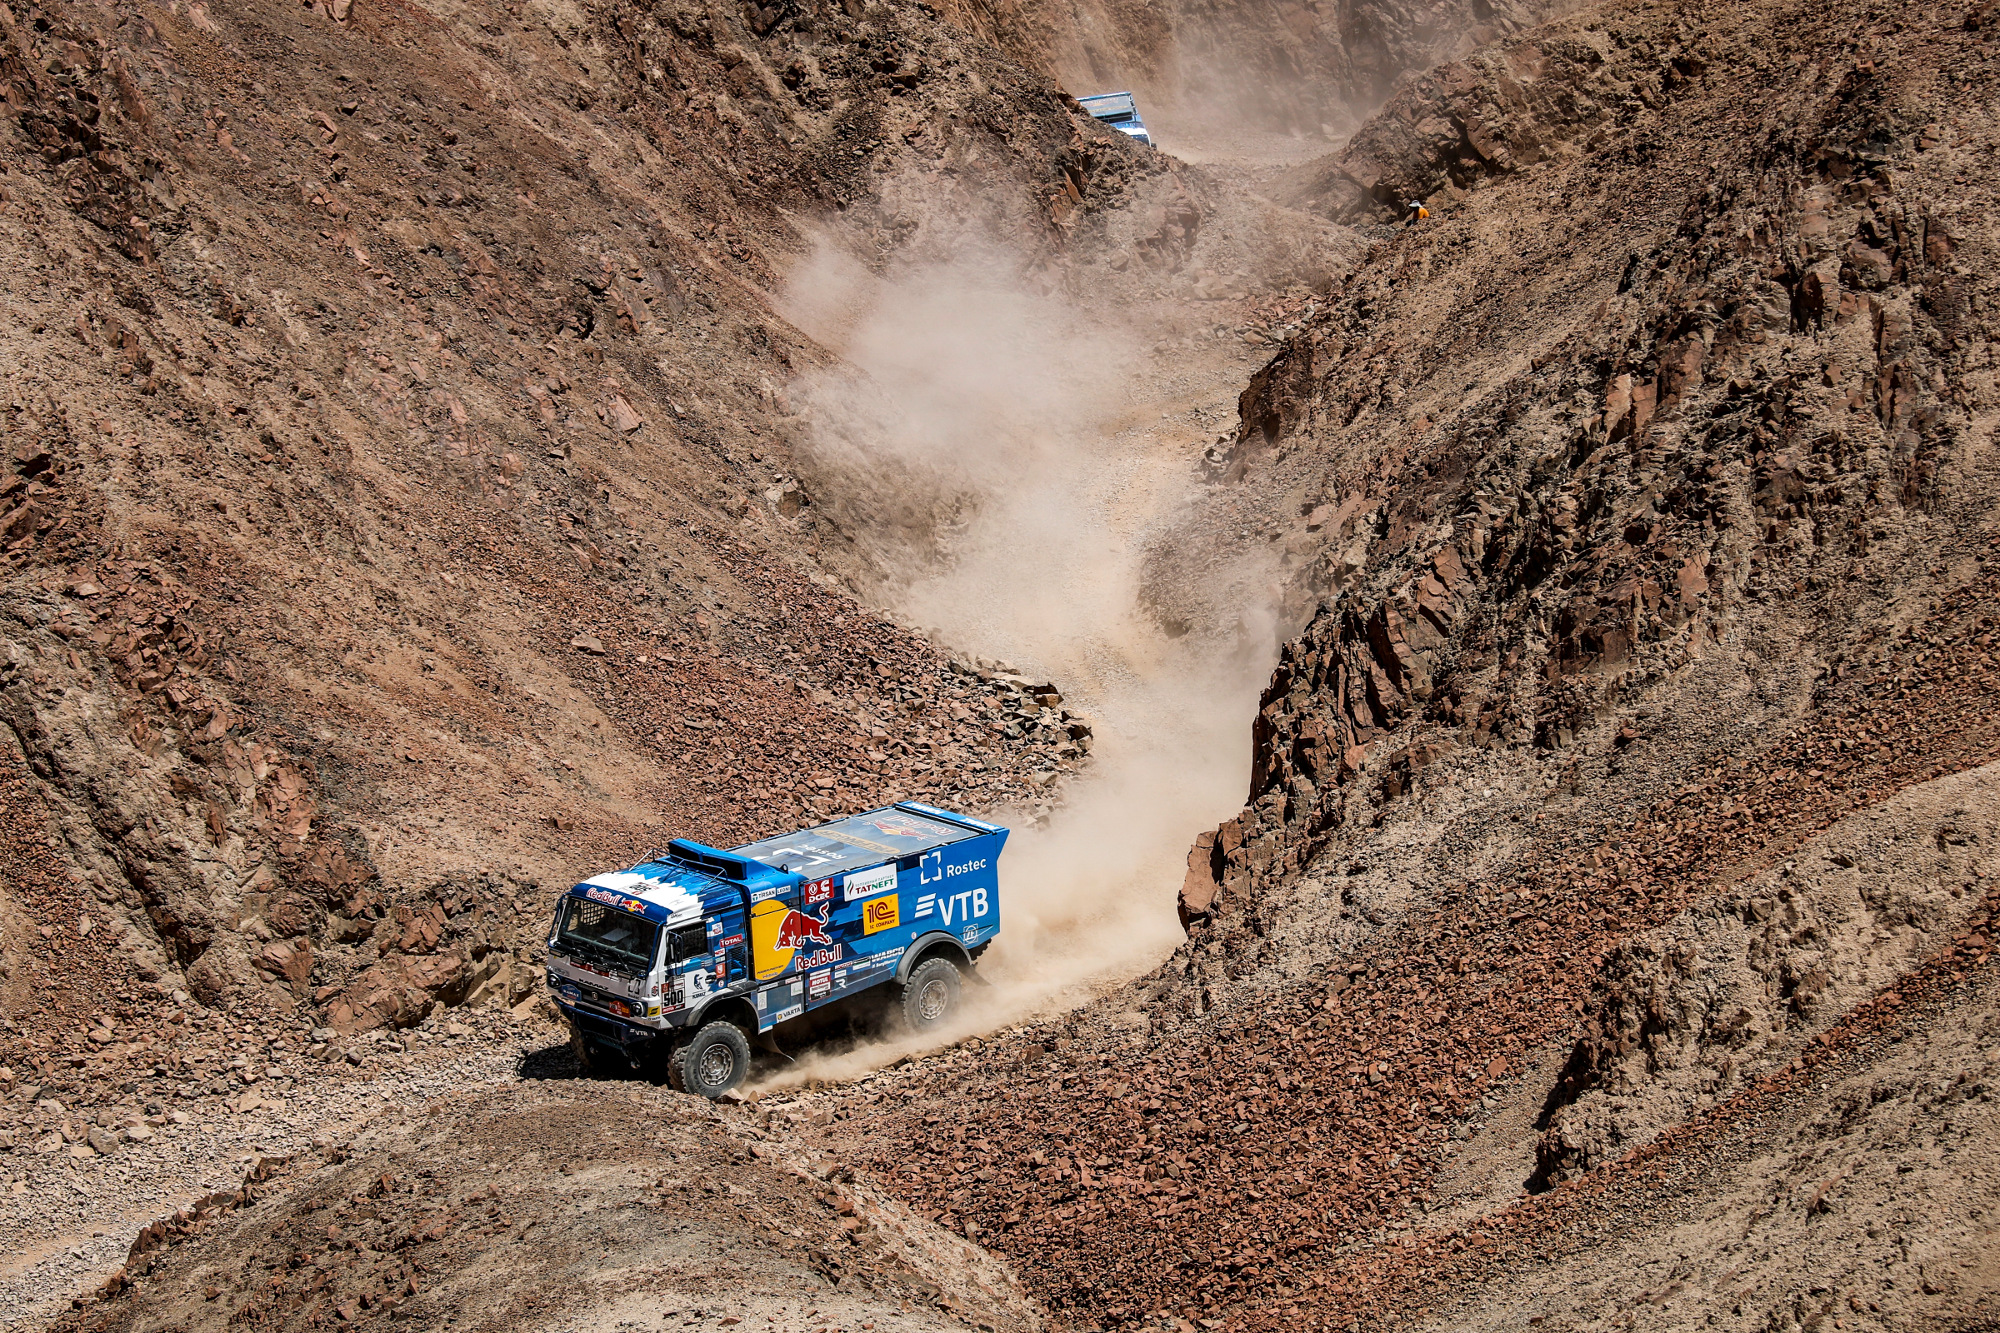 500 NIKOLAEV Eduard (rus); IAKOVLEV Evgenii (rus); RYBAKOV Vladimir (rus); Kamaz; Kamaz - Master; Truck; Camion; action during the Dakar 2019; Stage 7; San Juan de Marcona - San Juan de Marcona; peru; on january 14 - Photo Florent Gooden / DPPI